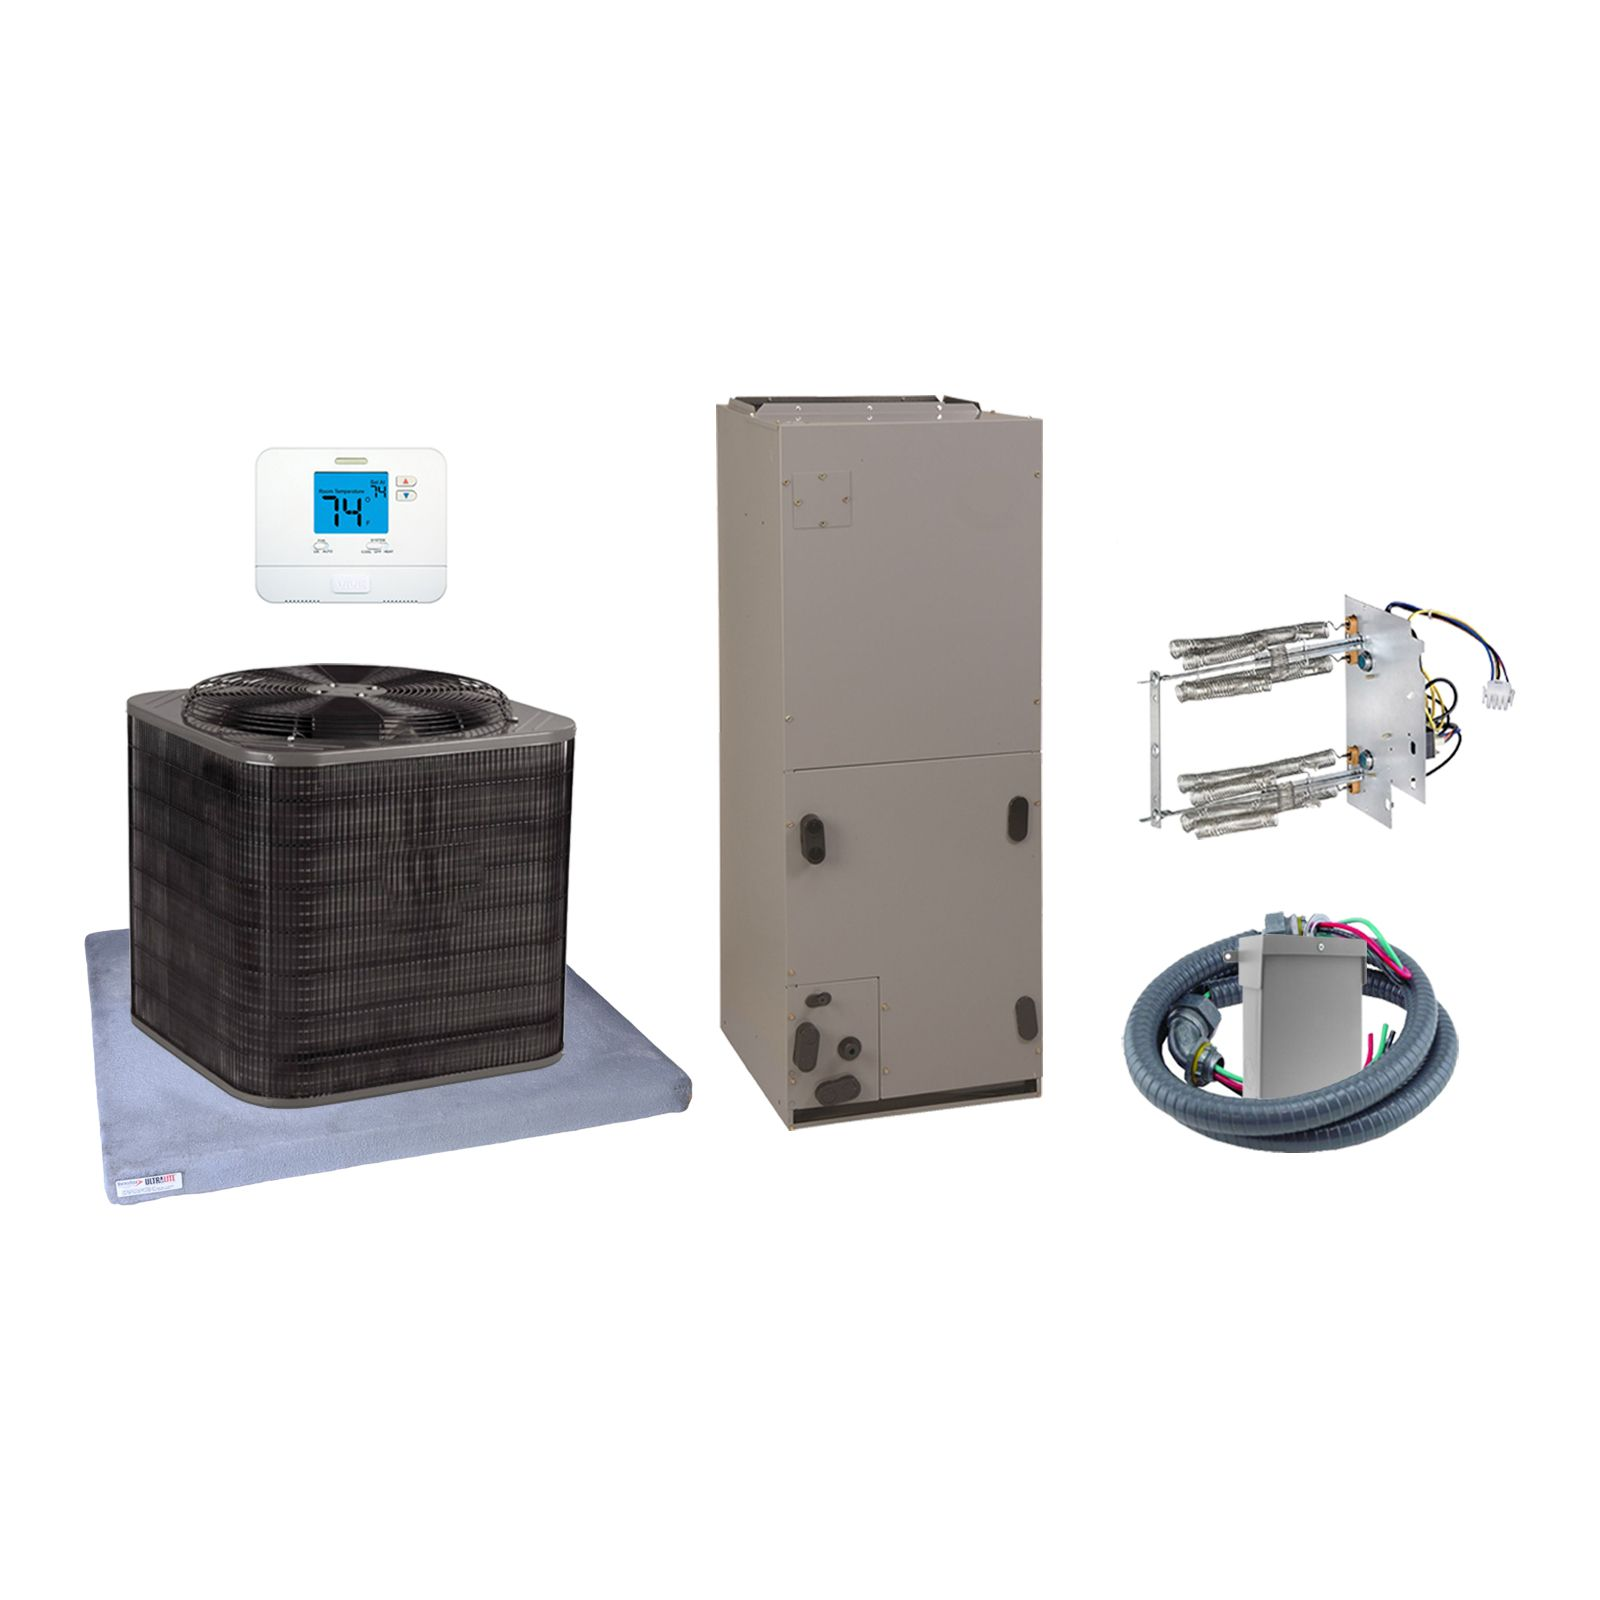 EcoTemp (AHRI 7656443) 4 Ton, 14.5 SEER/12 EER Horizontal Air Conditioner Split System and Install Kit